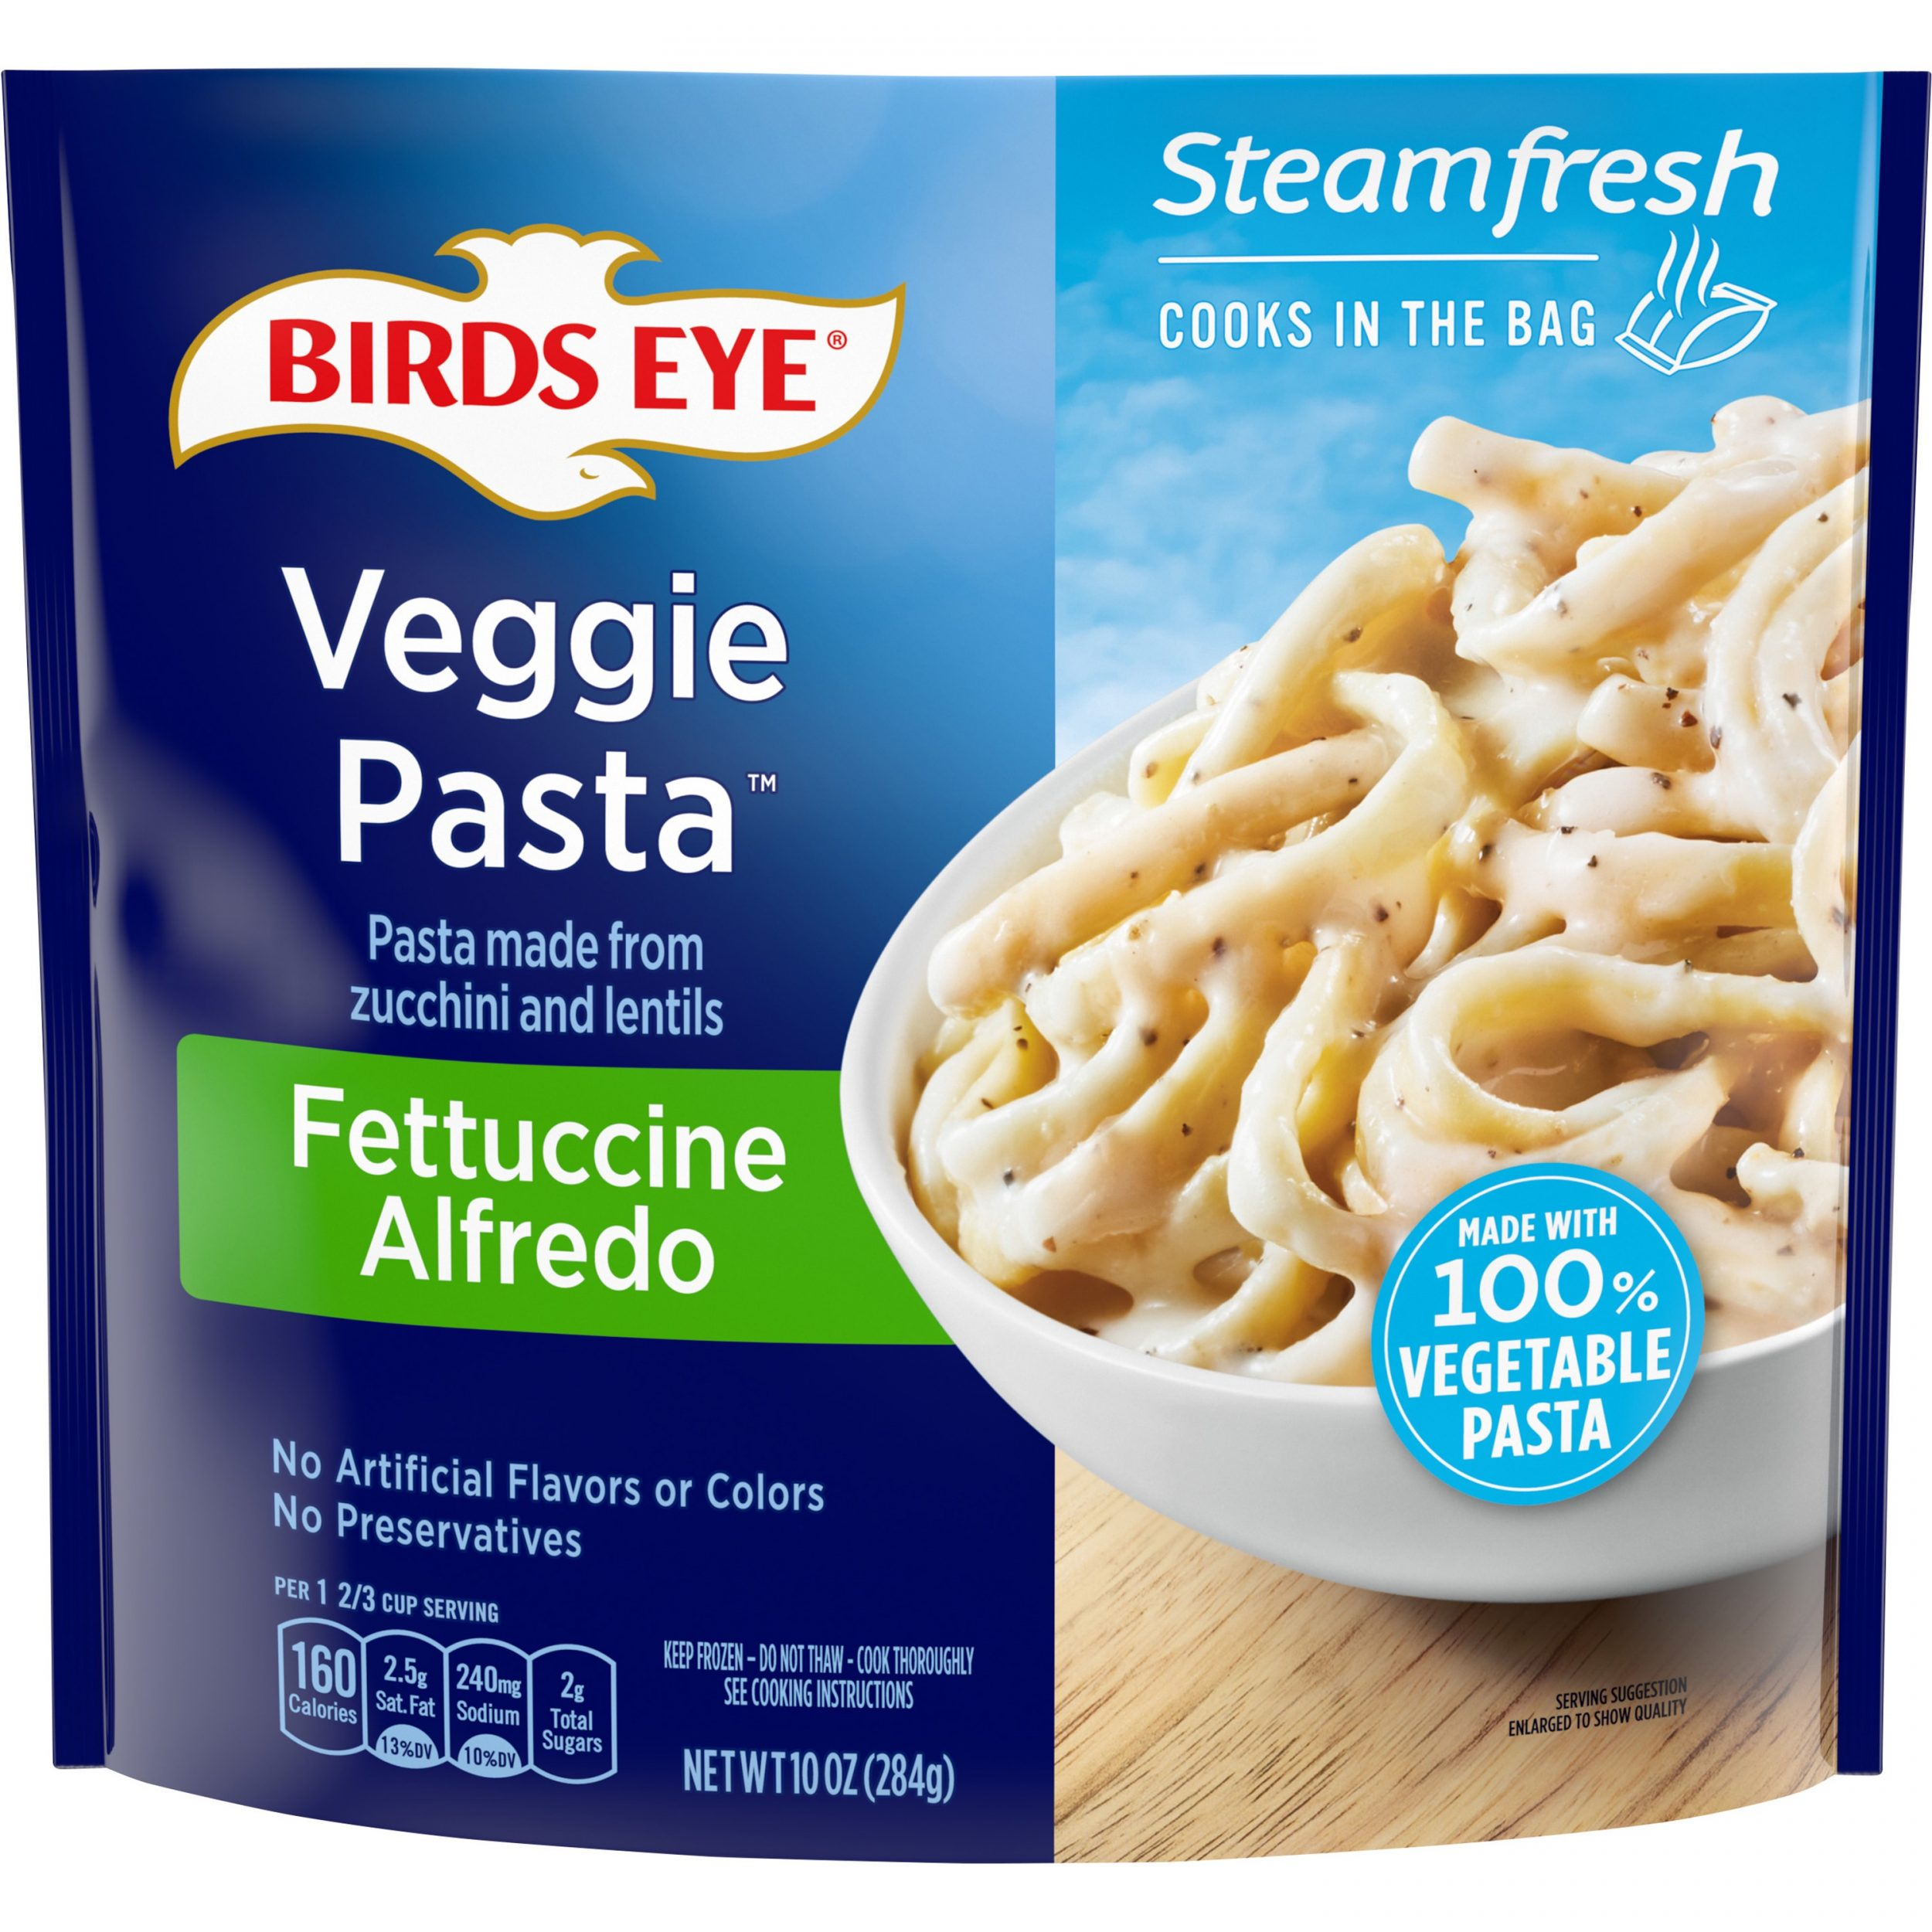 Birds Eye Steamfresh Veggie Made™ Fettuccine Alfredo